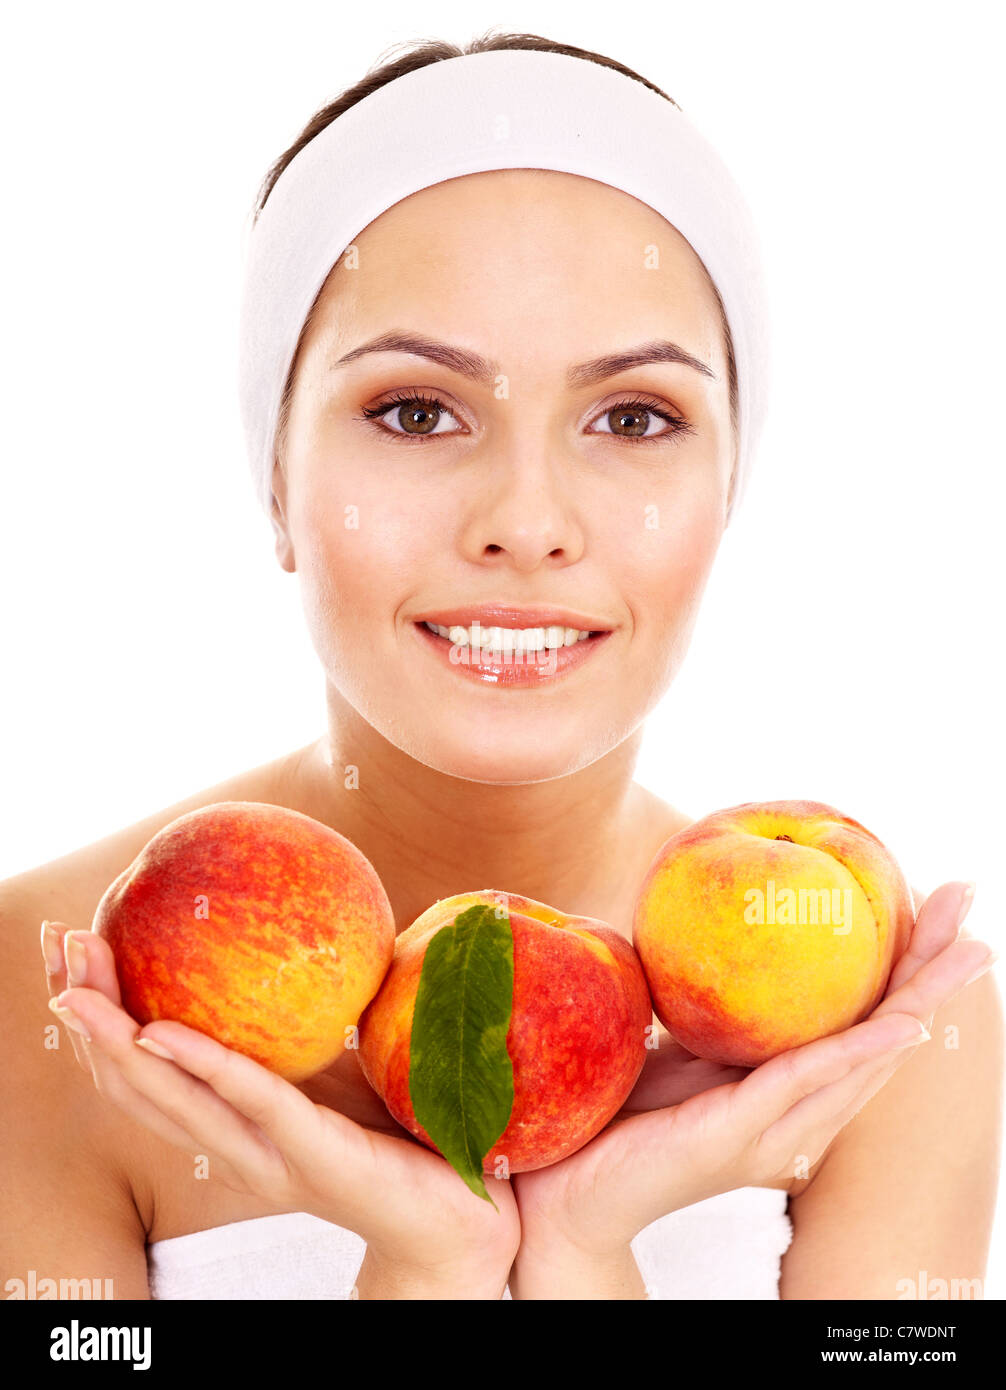 Fruit Facial Masks 15